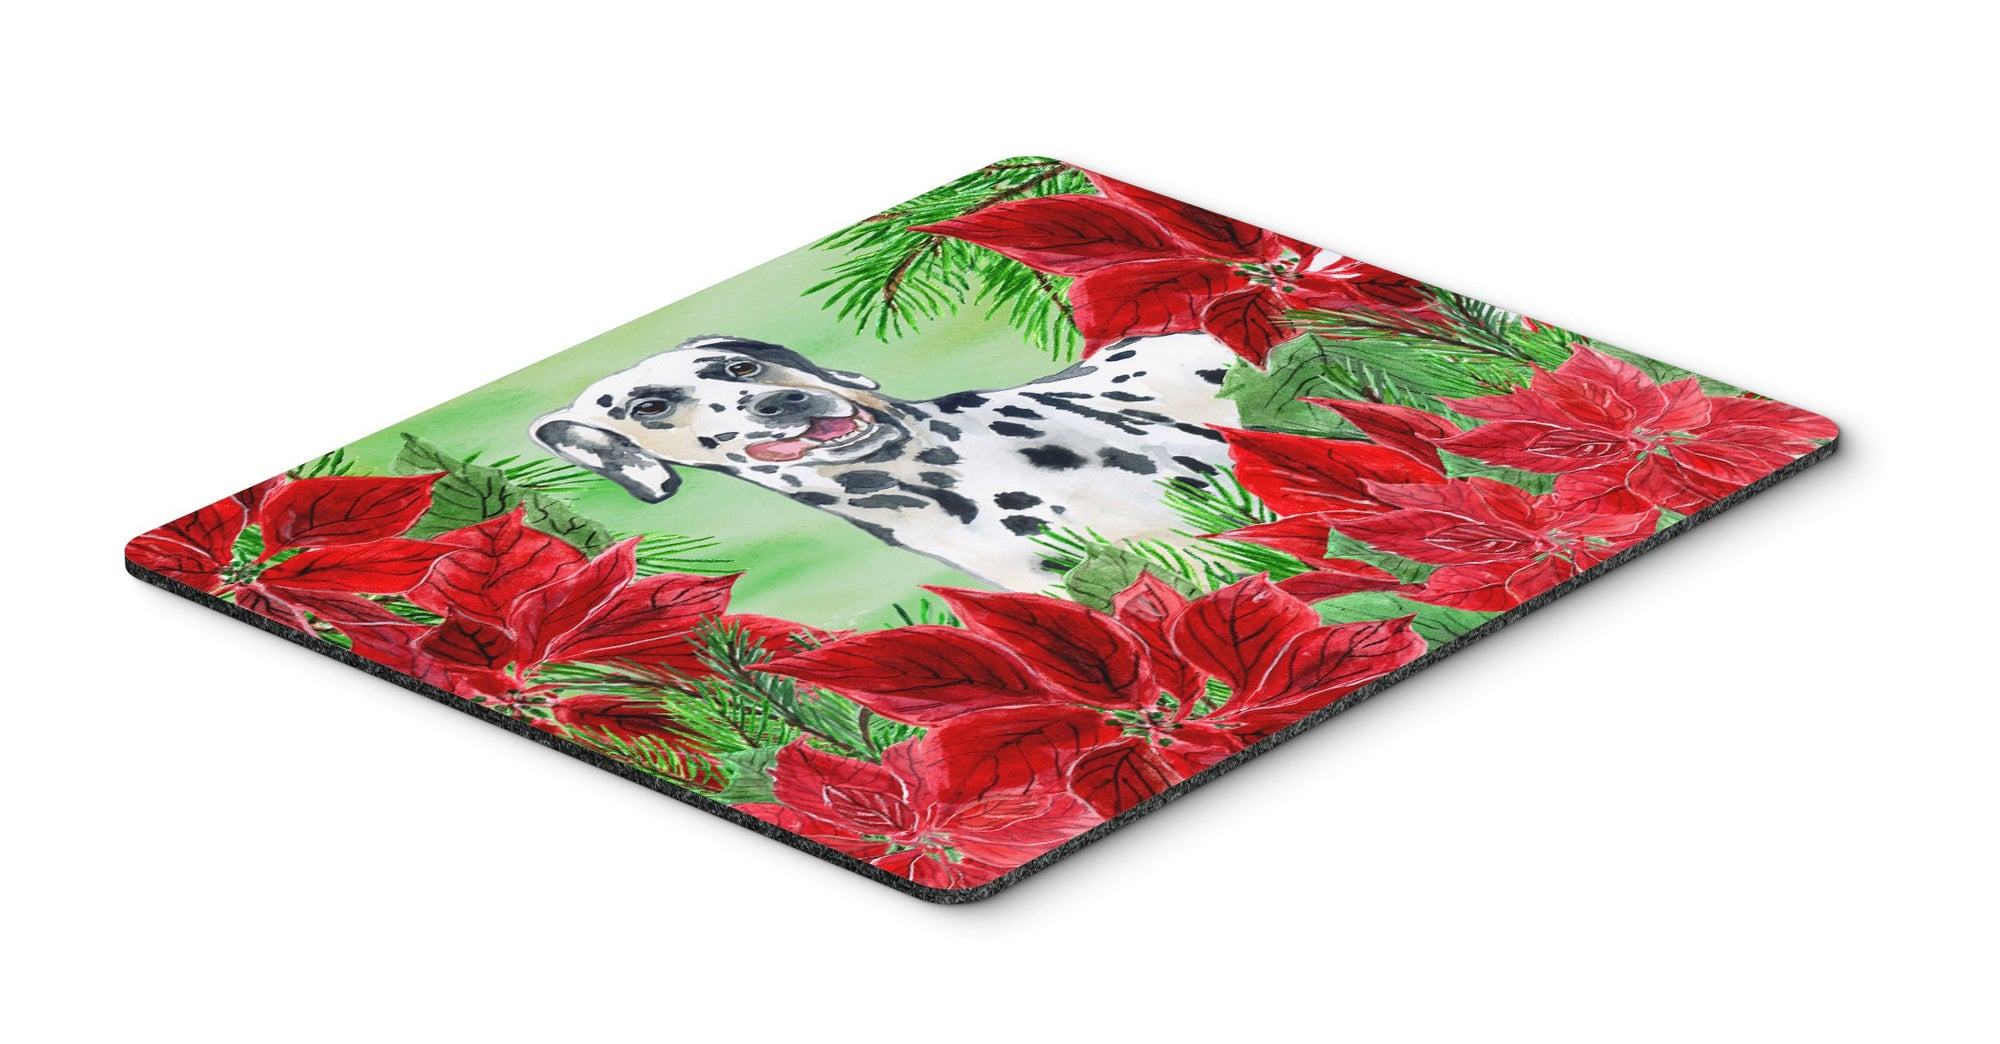 Dalmatian Poinsettas Mouse Pad, Hot Pad or Trivet CK1301MP by Caroline's Treasures